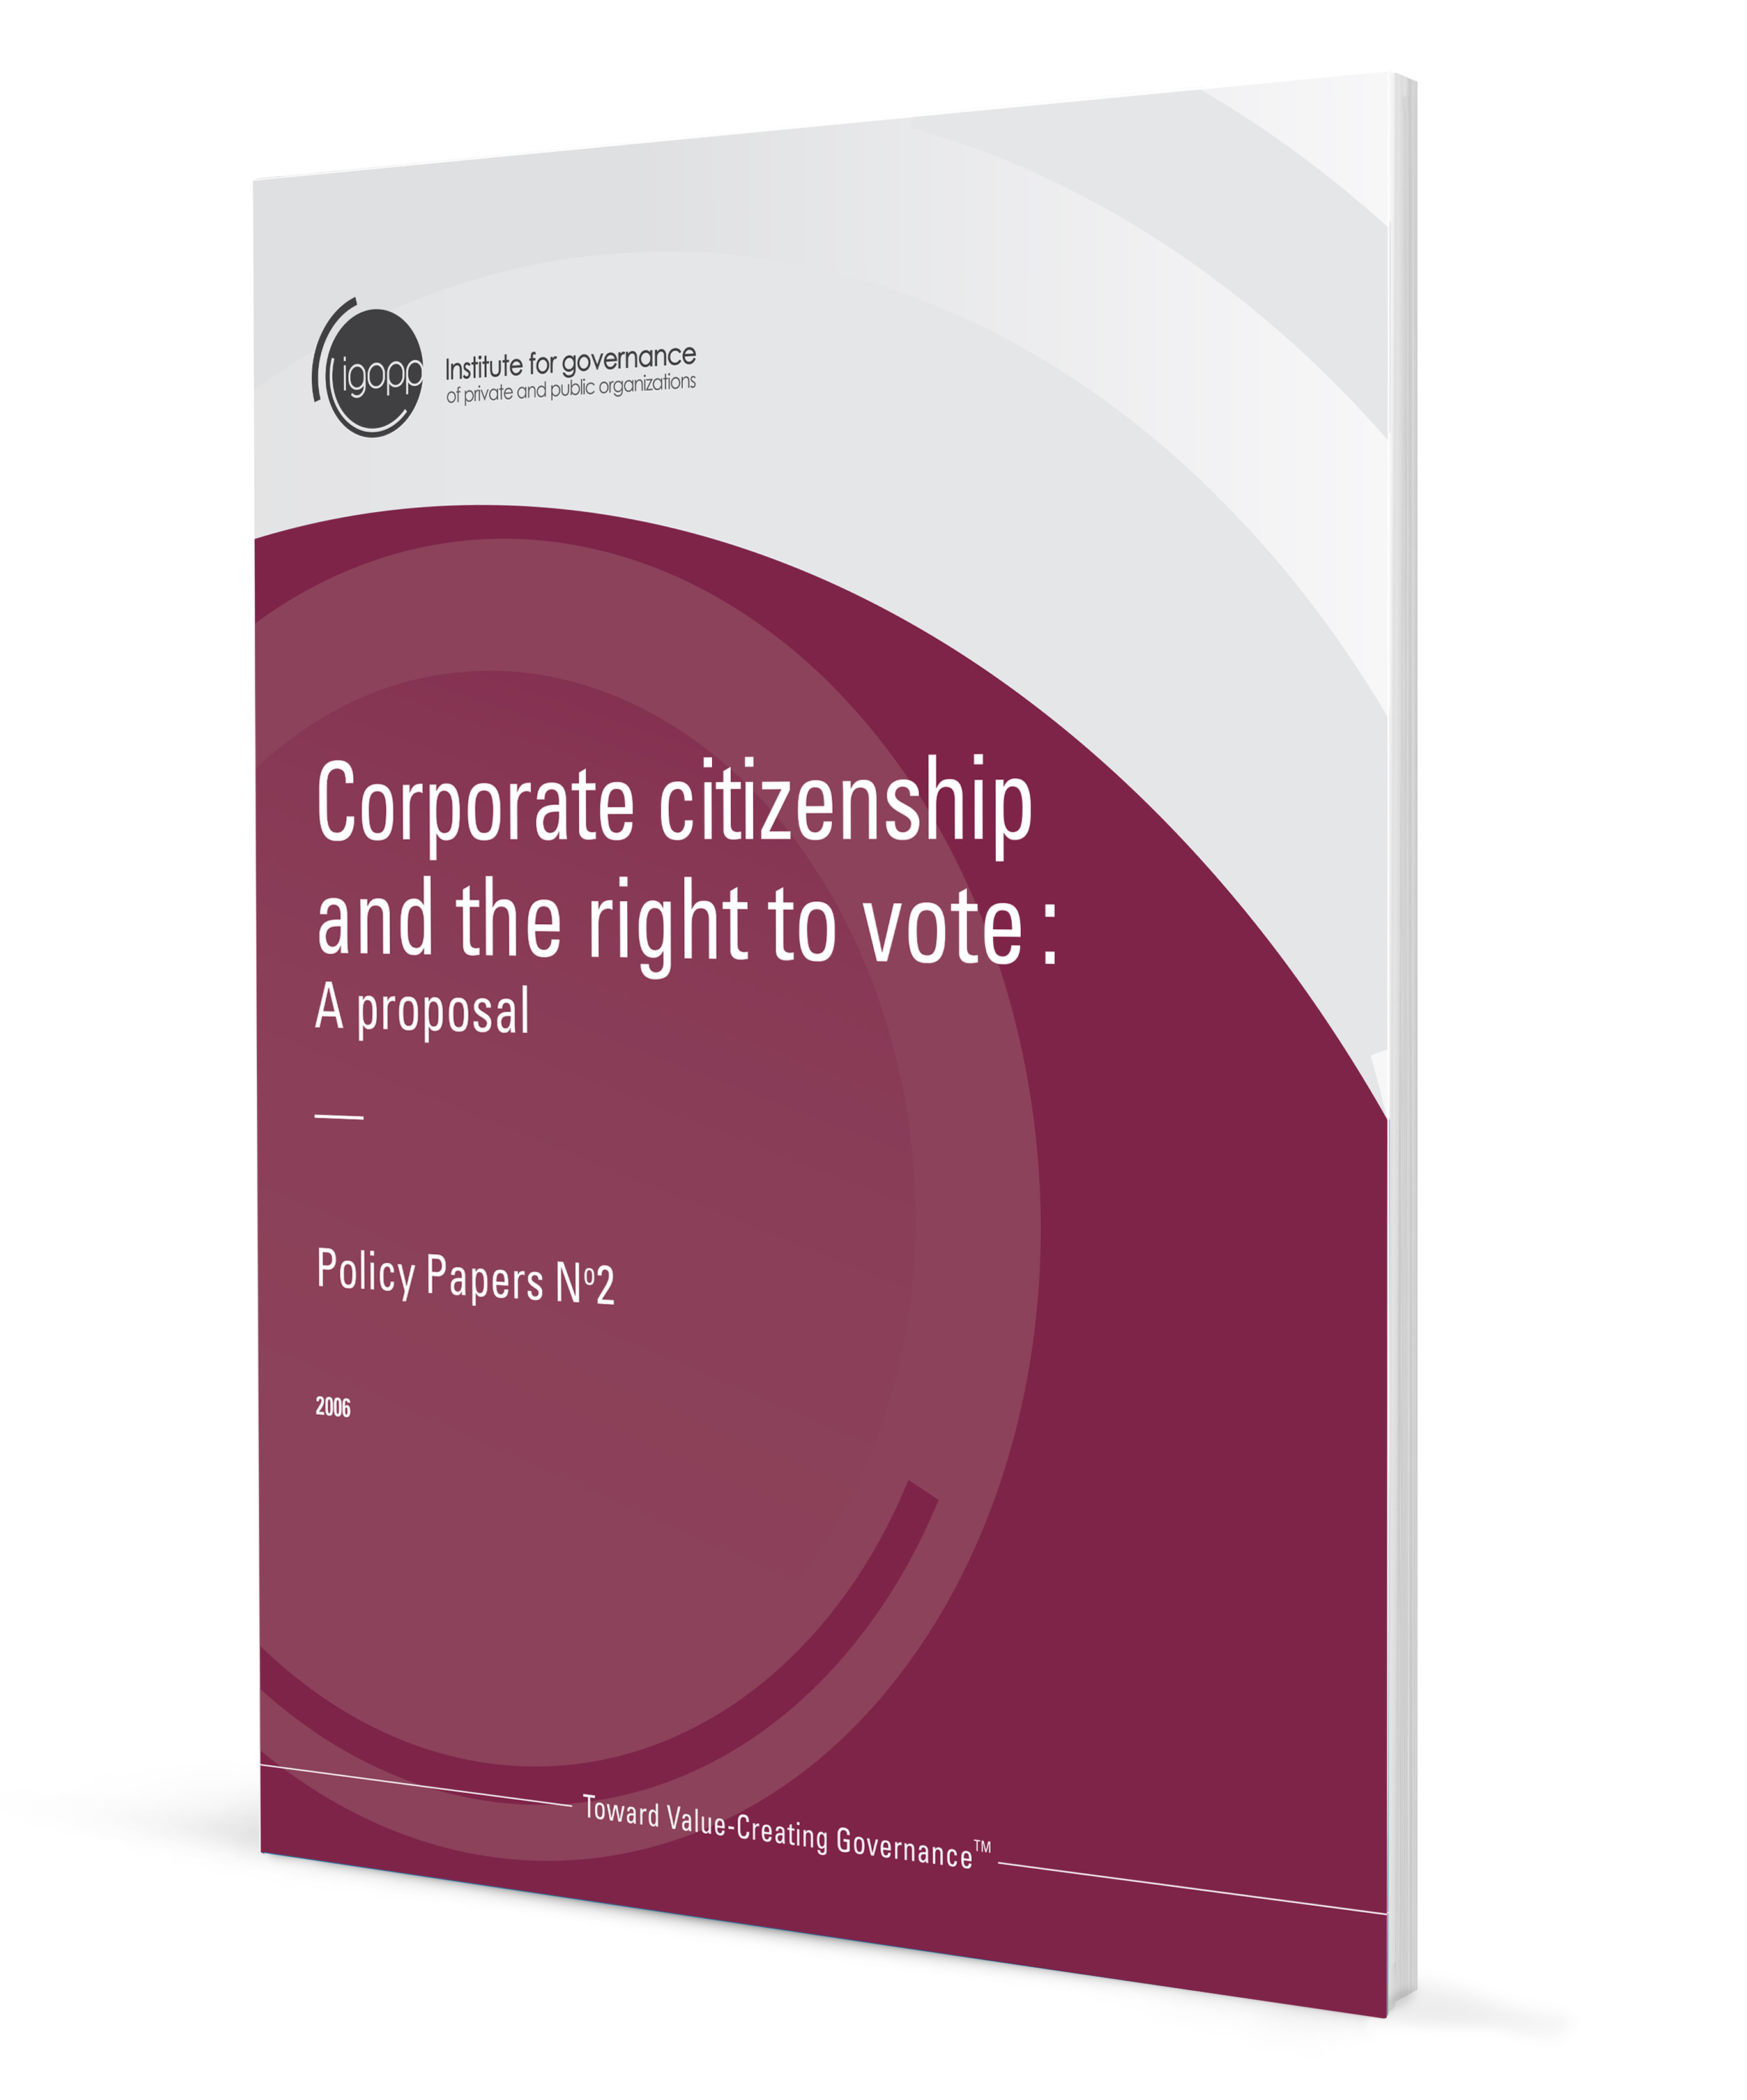 Corporate citizenship and the right to vote